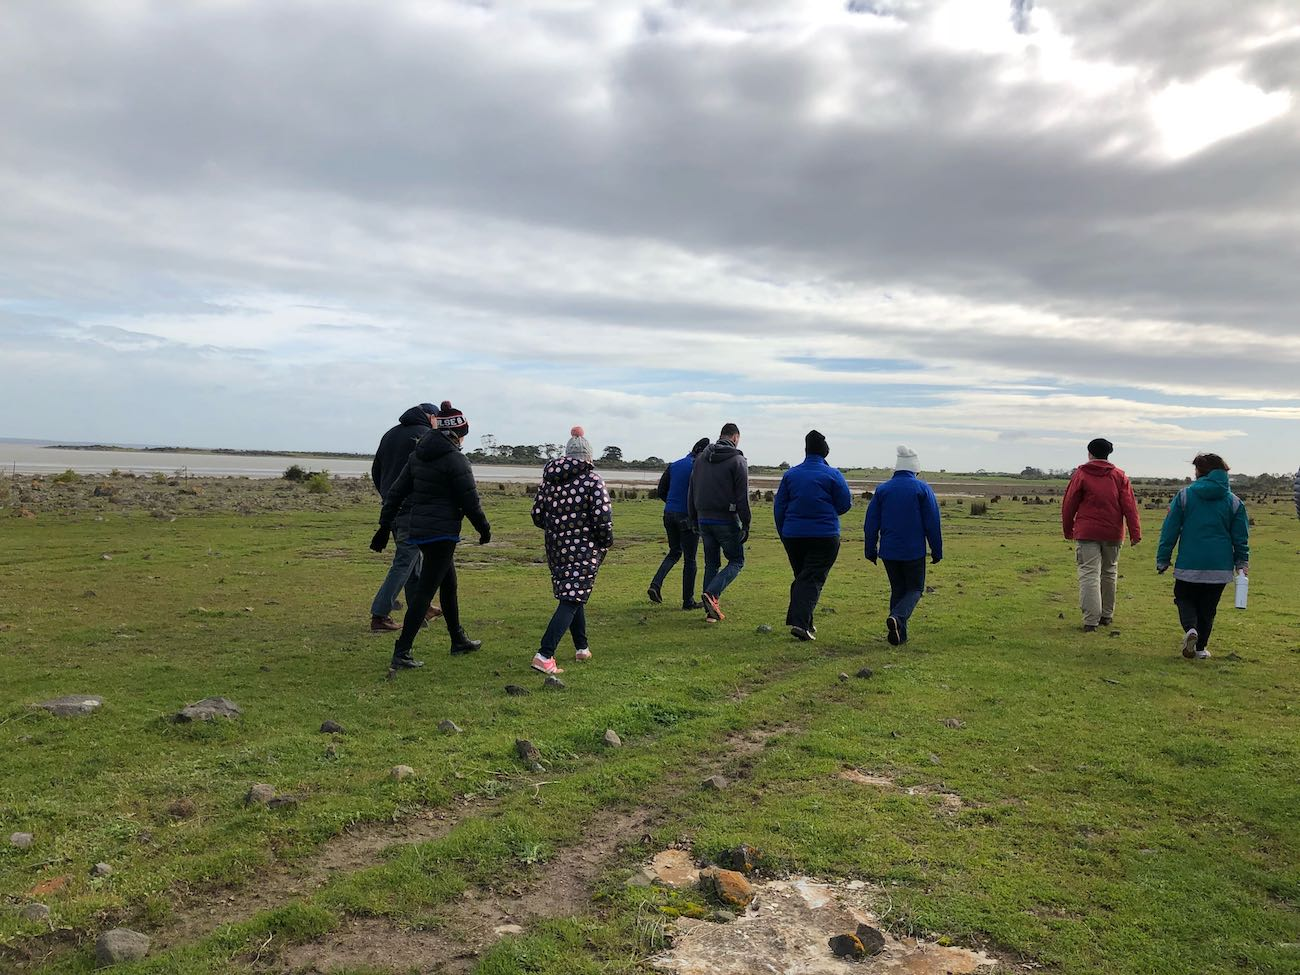 Greening Australia Project Office Candice Parker takes us on a guided walking tour around Lake Corangamite